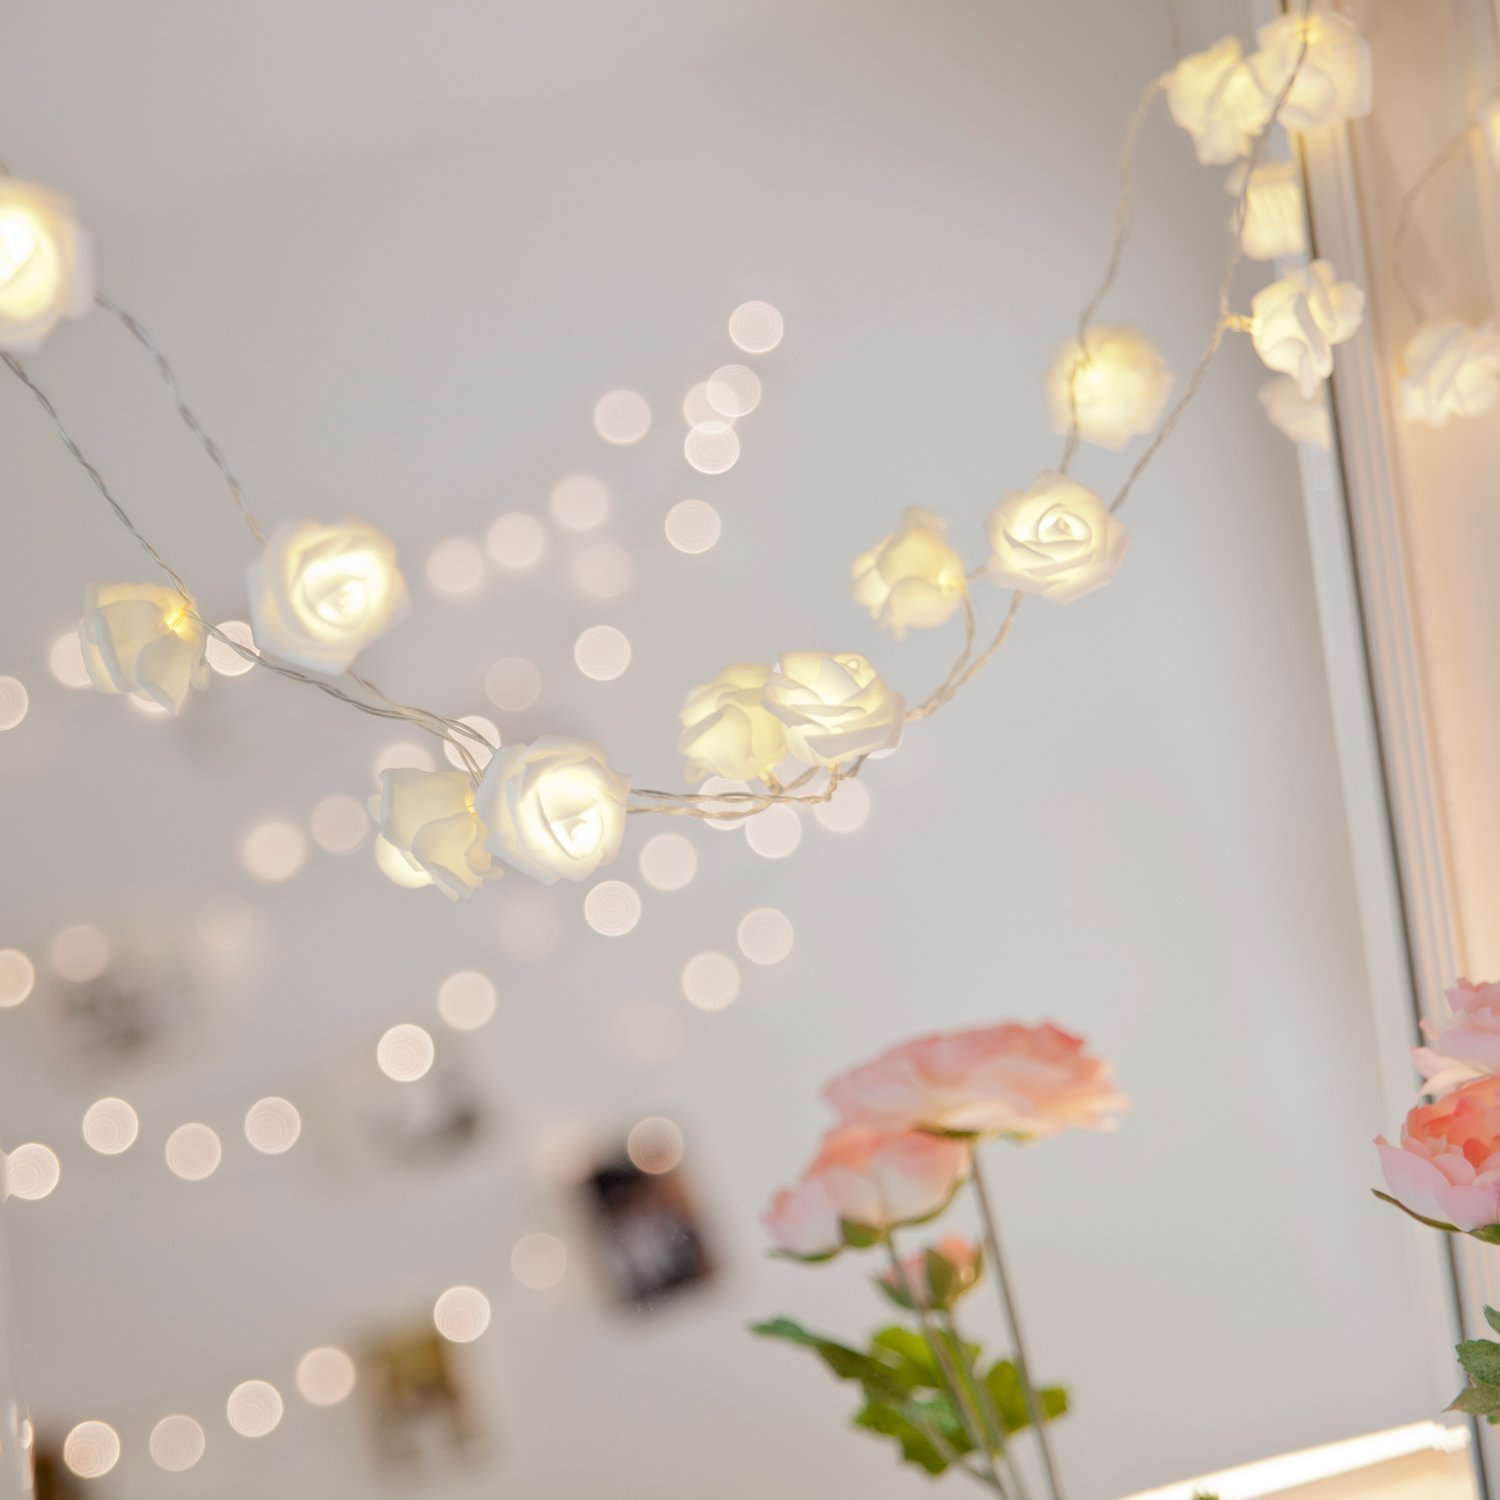 2m 20 led rose flower fairy string lights holiday lighting novelty 2m 20 led rose flower fairy string lights holiday lighting novelty romantic wedding party christmas decoration roses lights in lighting strings from lights mightylinksfo